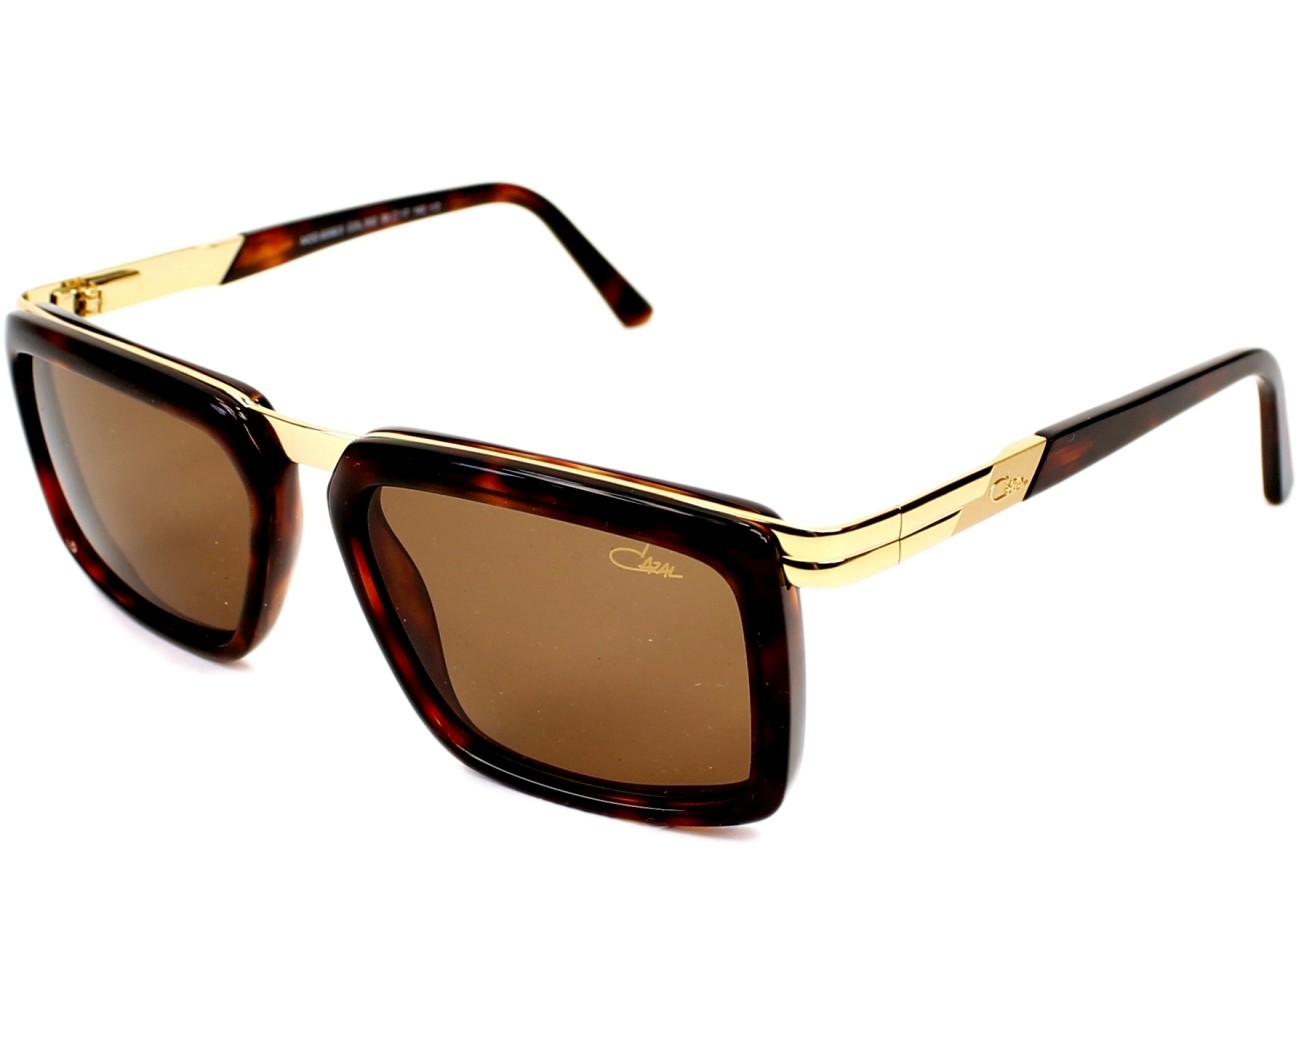 e8a9c25fc53e Sunglasses Cazal 6006-3 002 - Havana Gold profile view